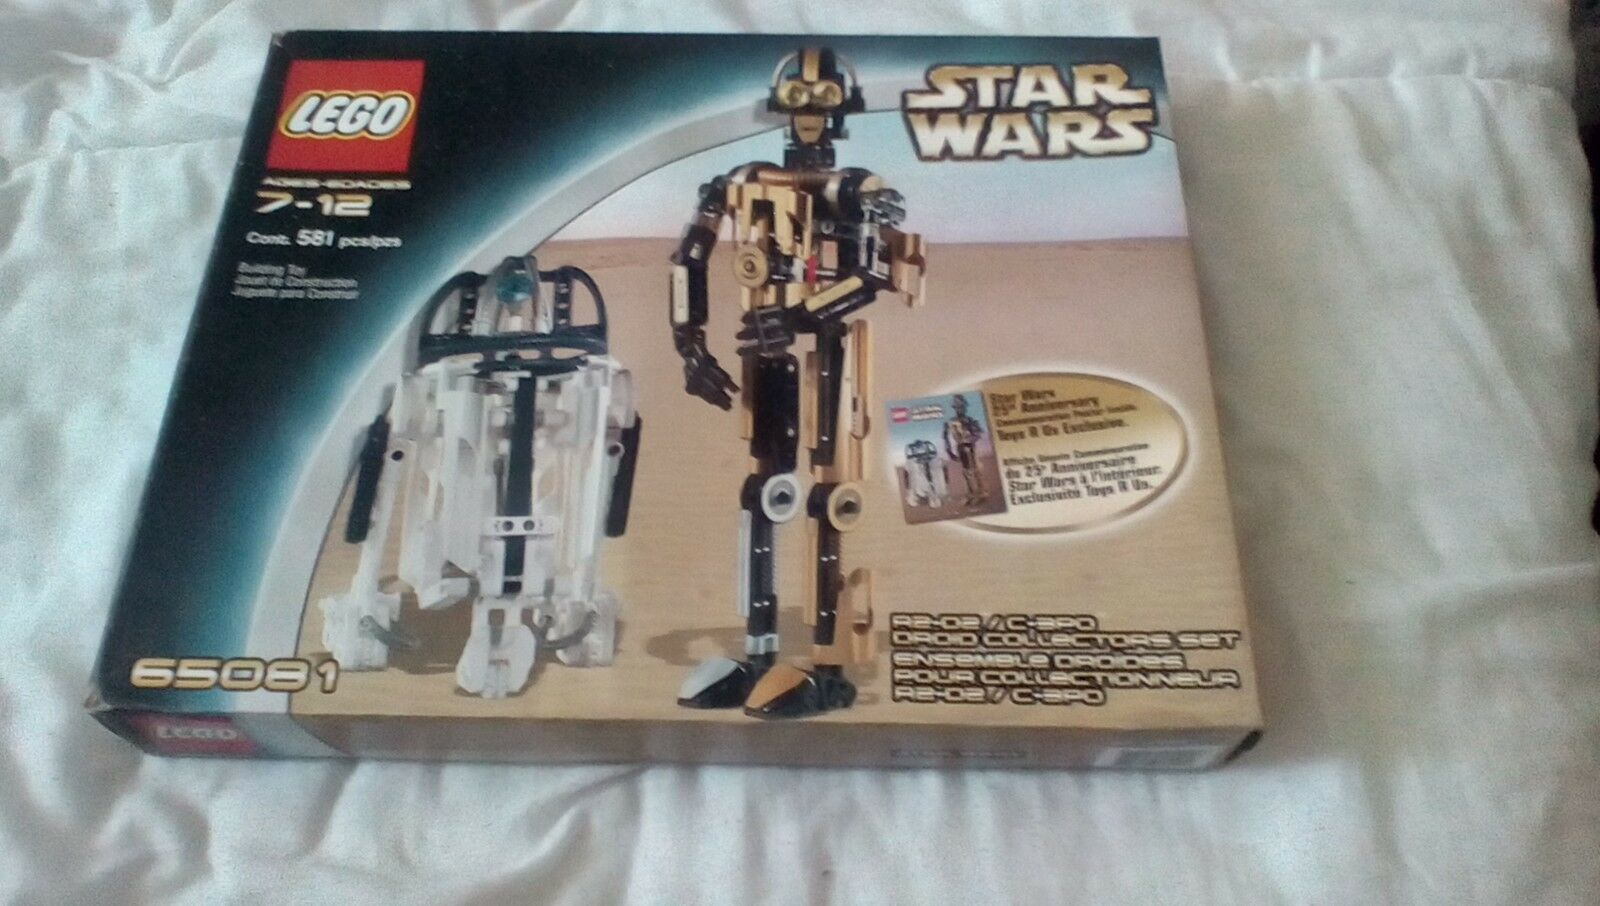 LEGO STAR WAR 65081R2-D2 C-3PO 25TH ANNIVERSARY NEW SEALED BOX VERY RARE ITEM